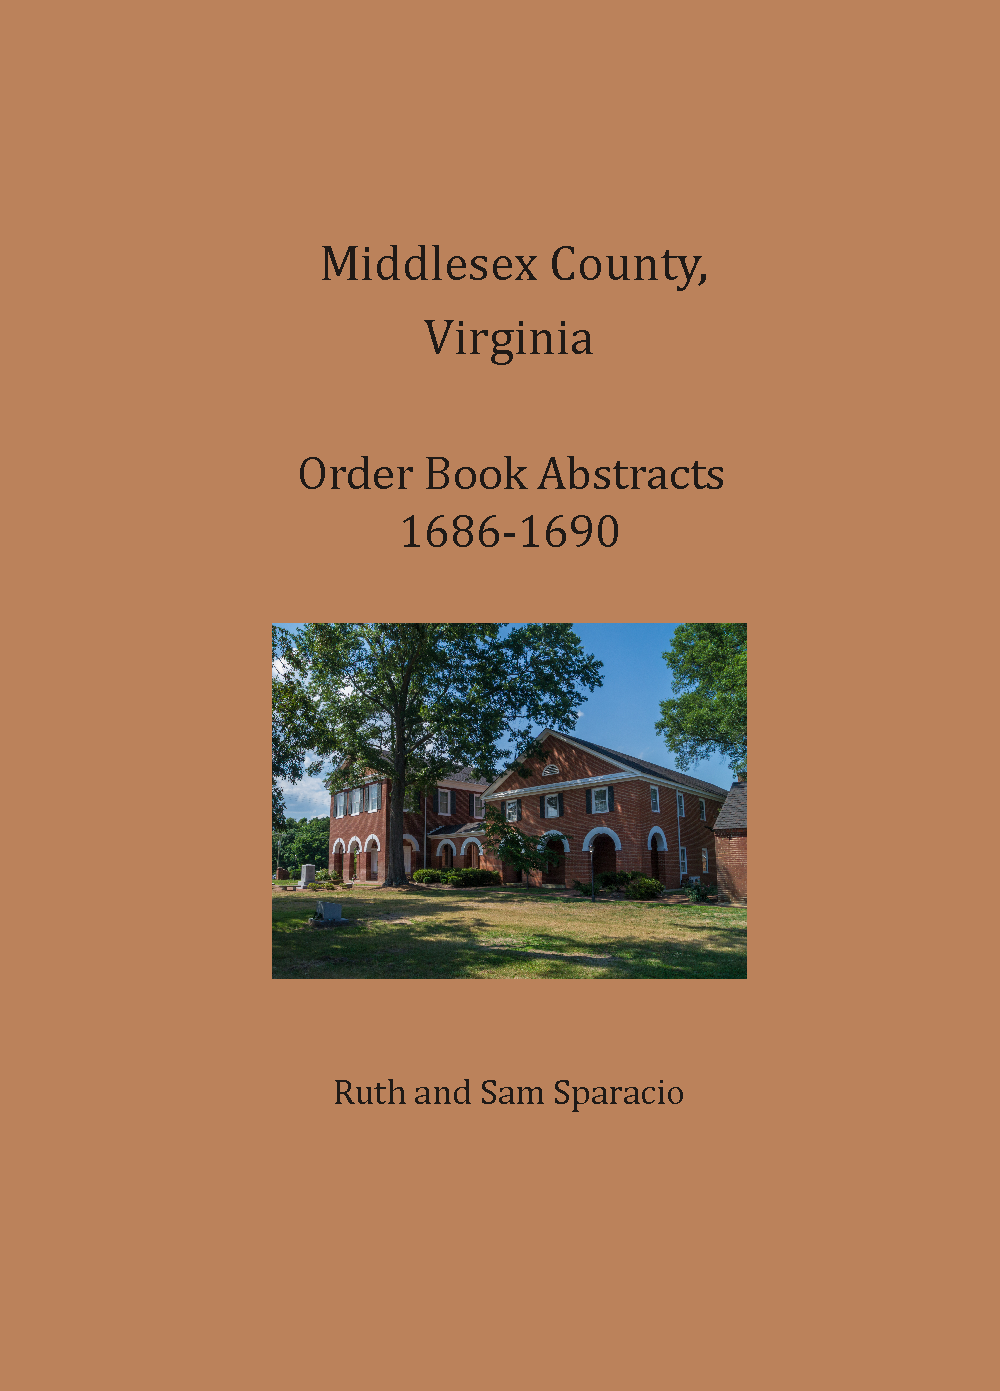 Middlesex County, Virginia Order Book, 1686-1690